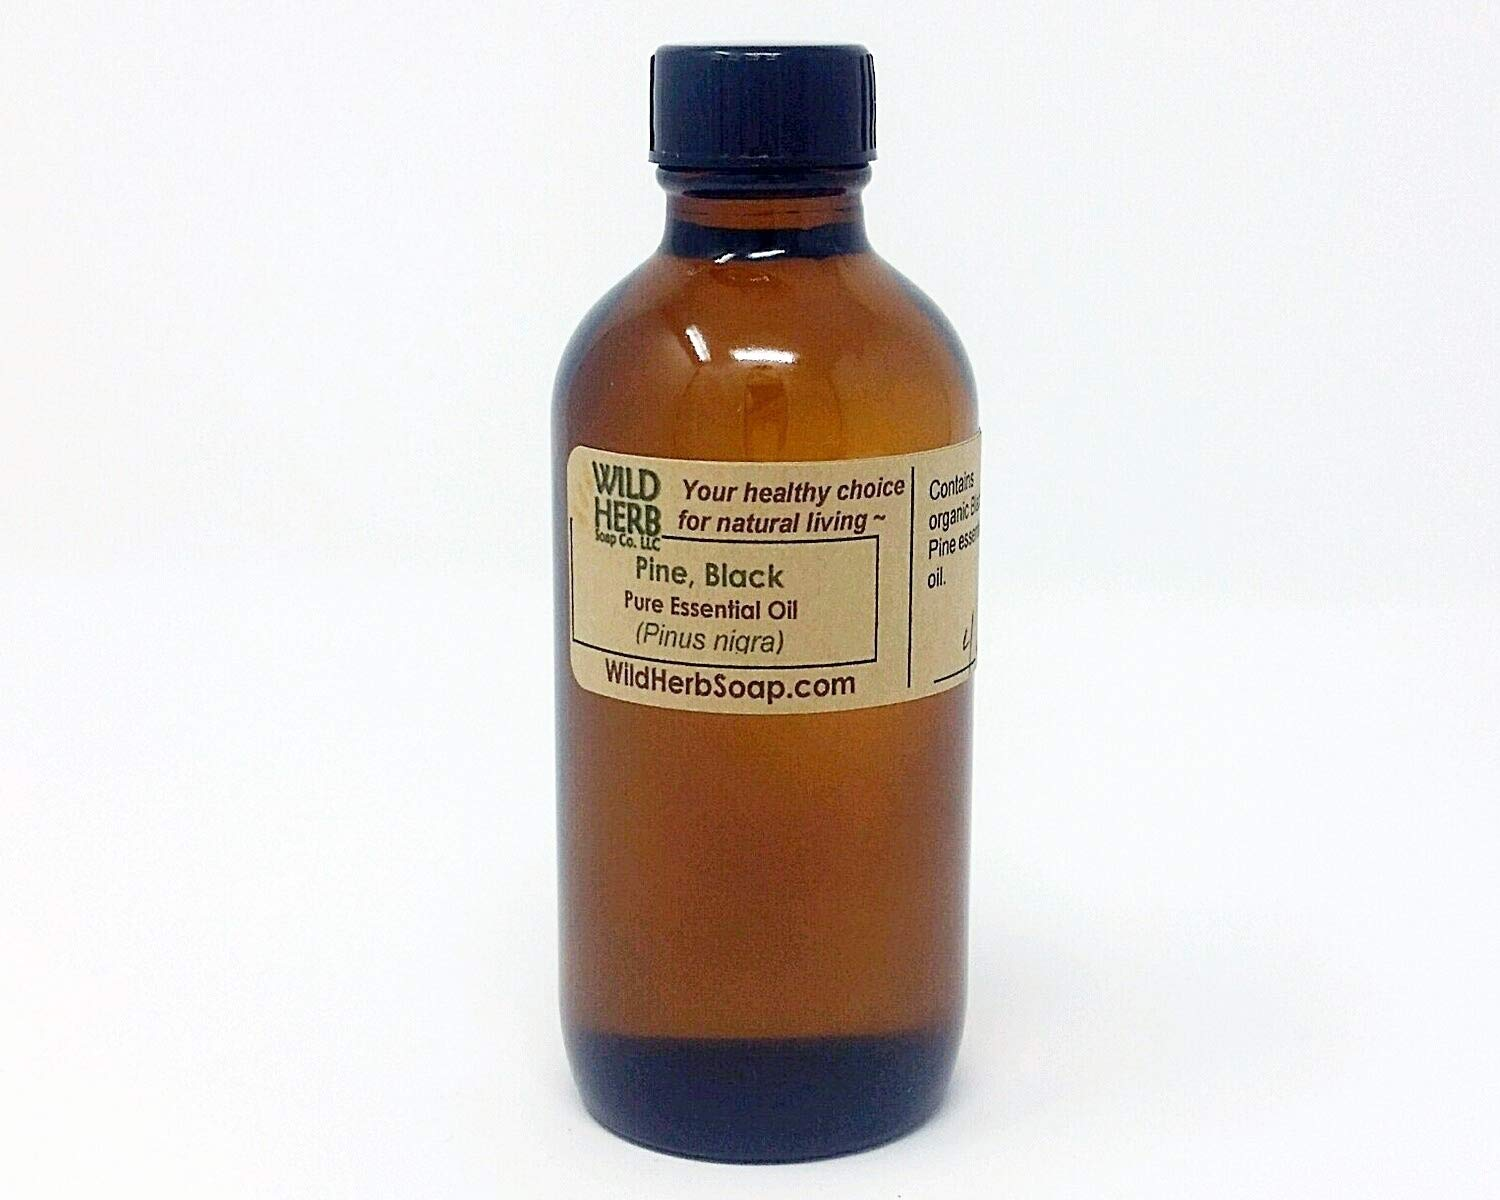 Black 引出物 Pine Essential Oil 16 oz 正規激安 sourced from USDA ISO and a 900